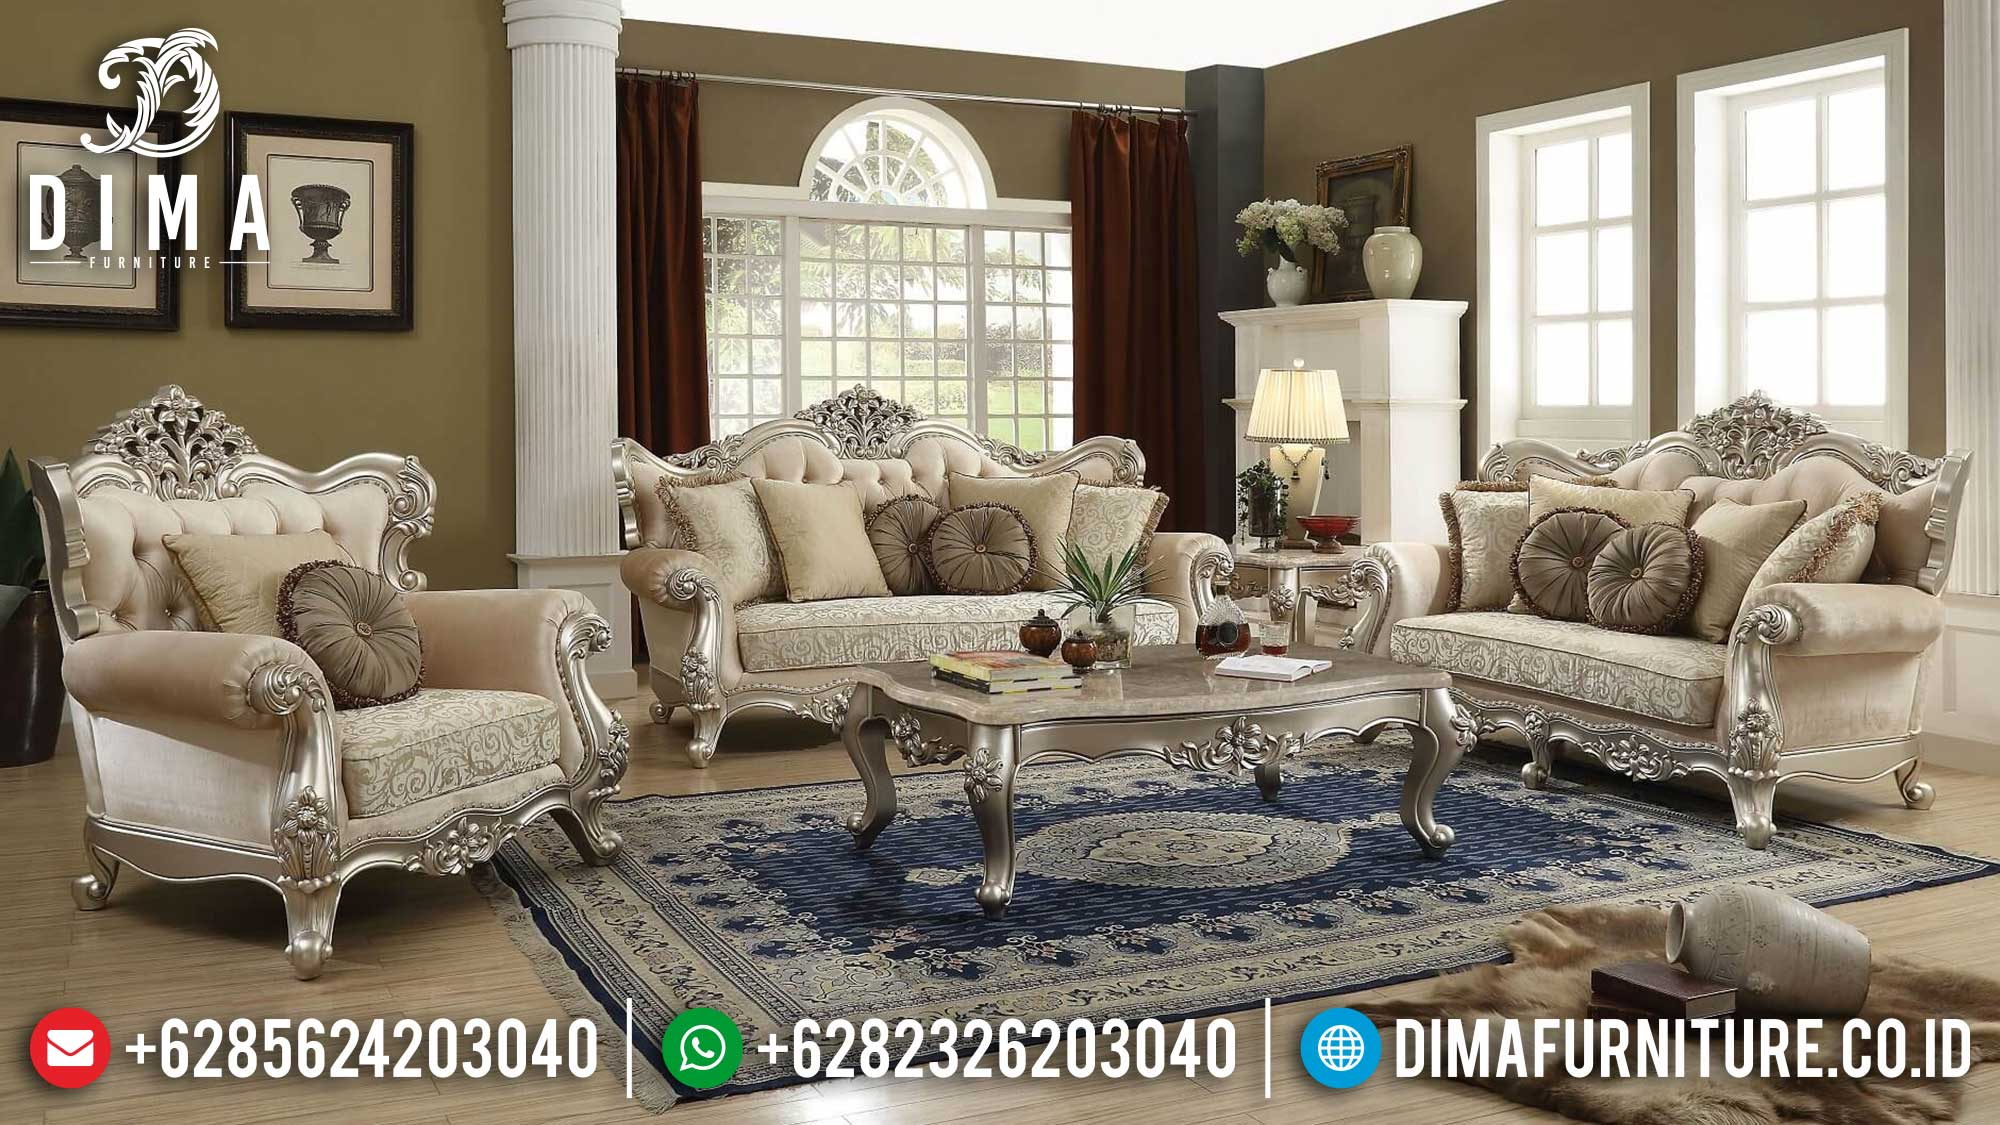 Sofa Tamu Mewah Jepara Roses Model Silver Luster Color New Luxury Duco Color Mm-0970